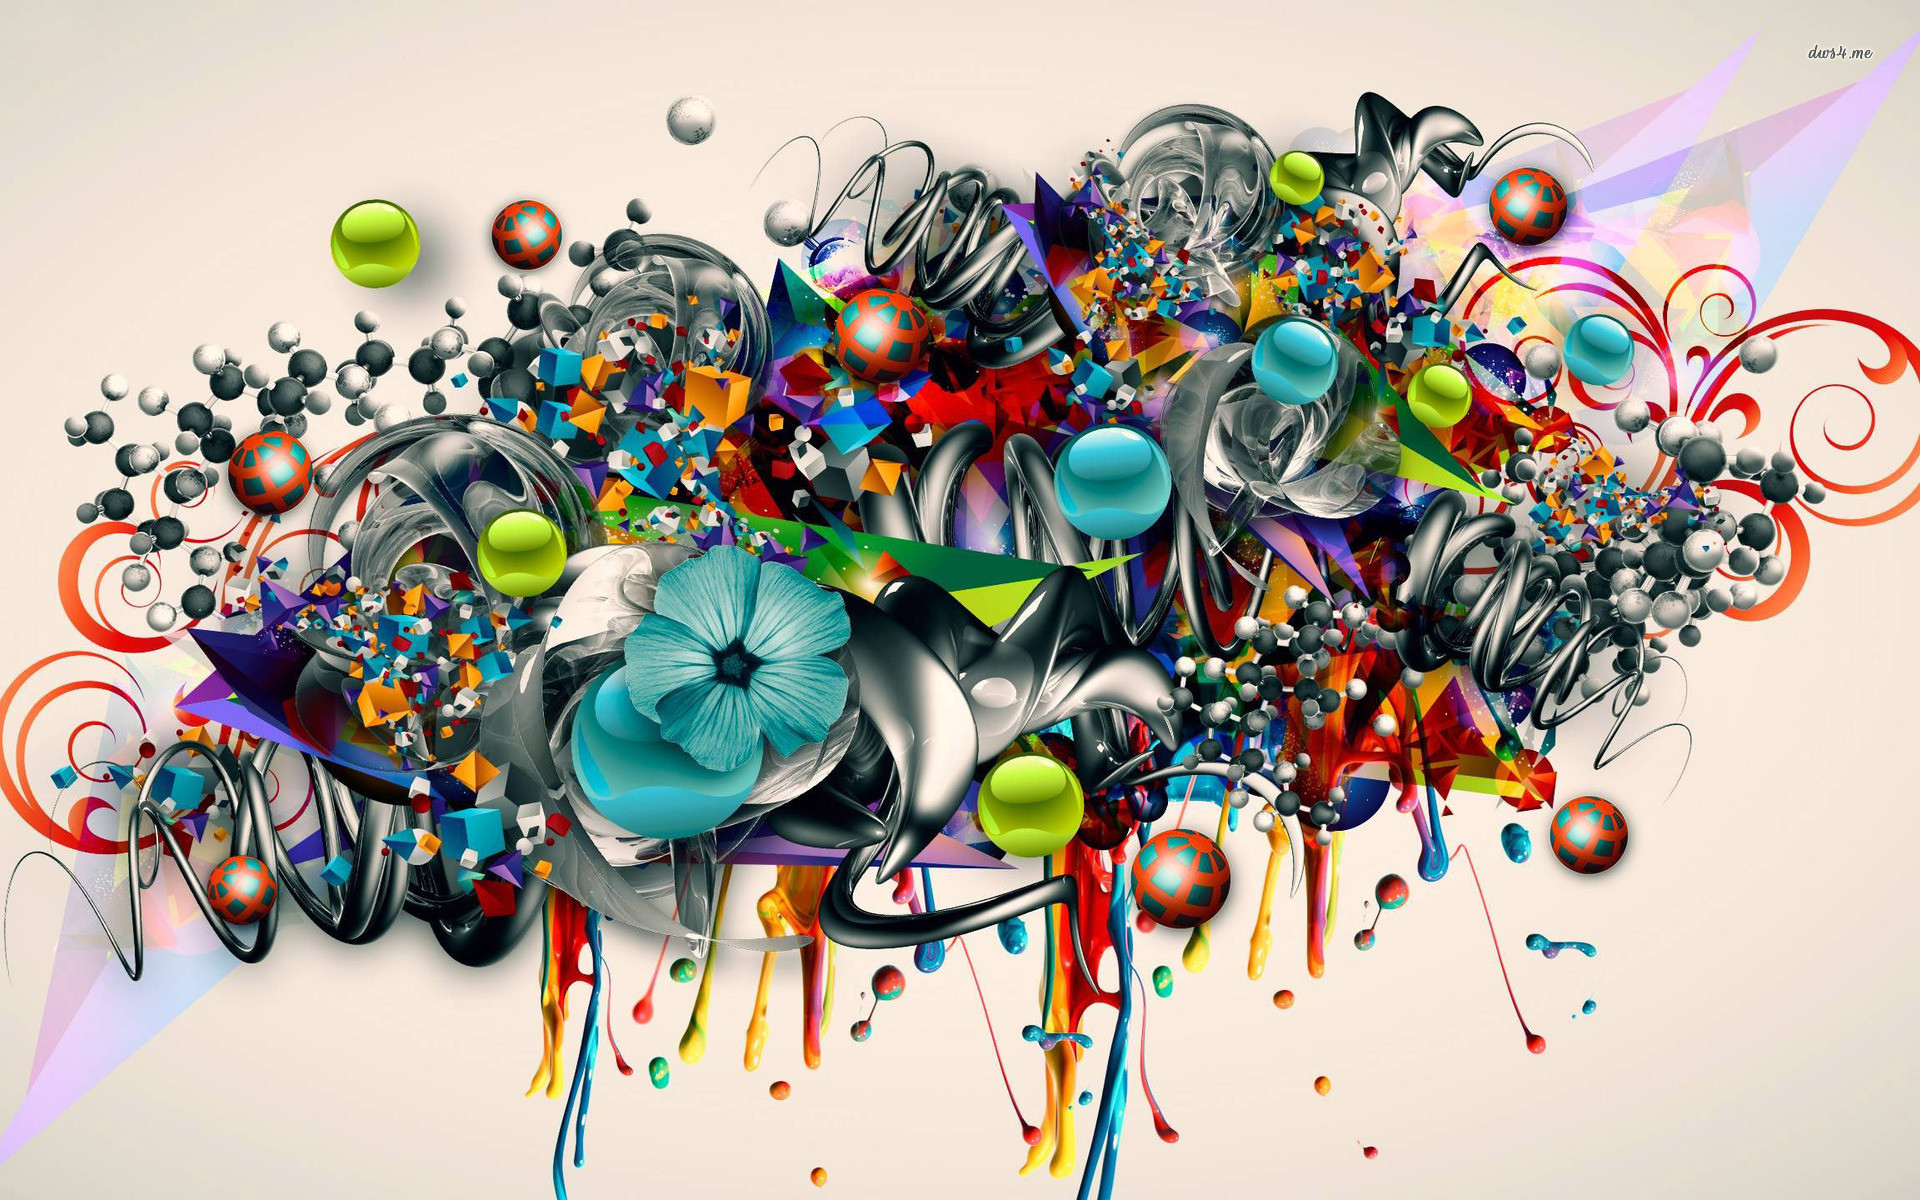 Download Wallpaper Music Graffiti Art - 806994-music-graffiti-wallpapers-1920x1200-for-mobile-hd  Snapshot_736617.jpg